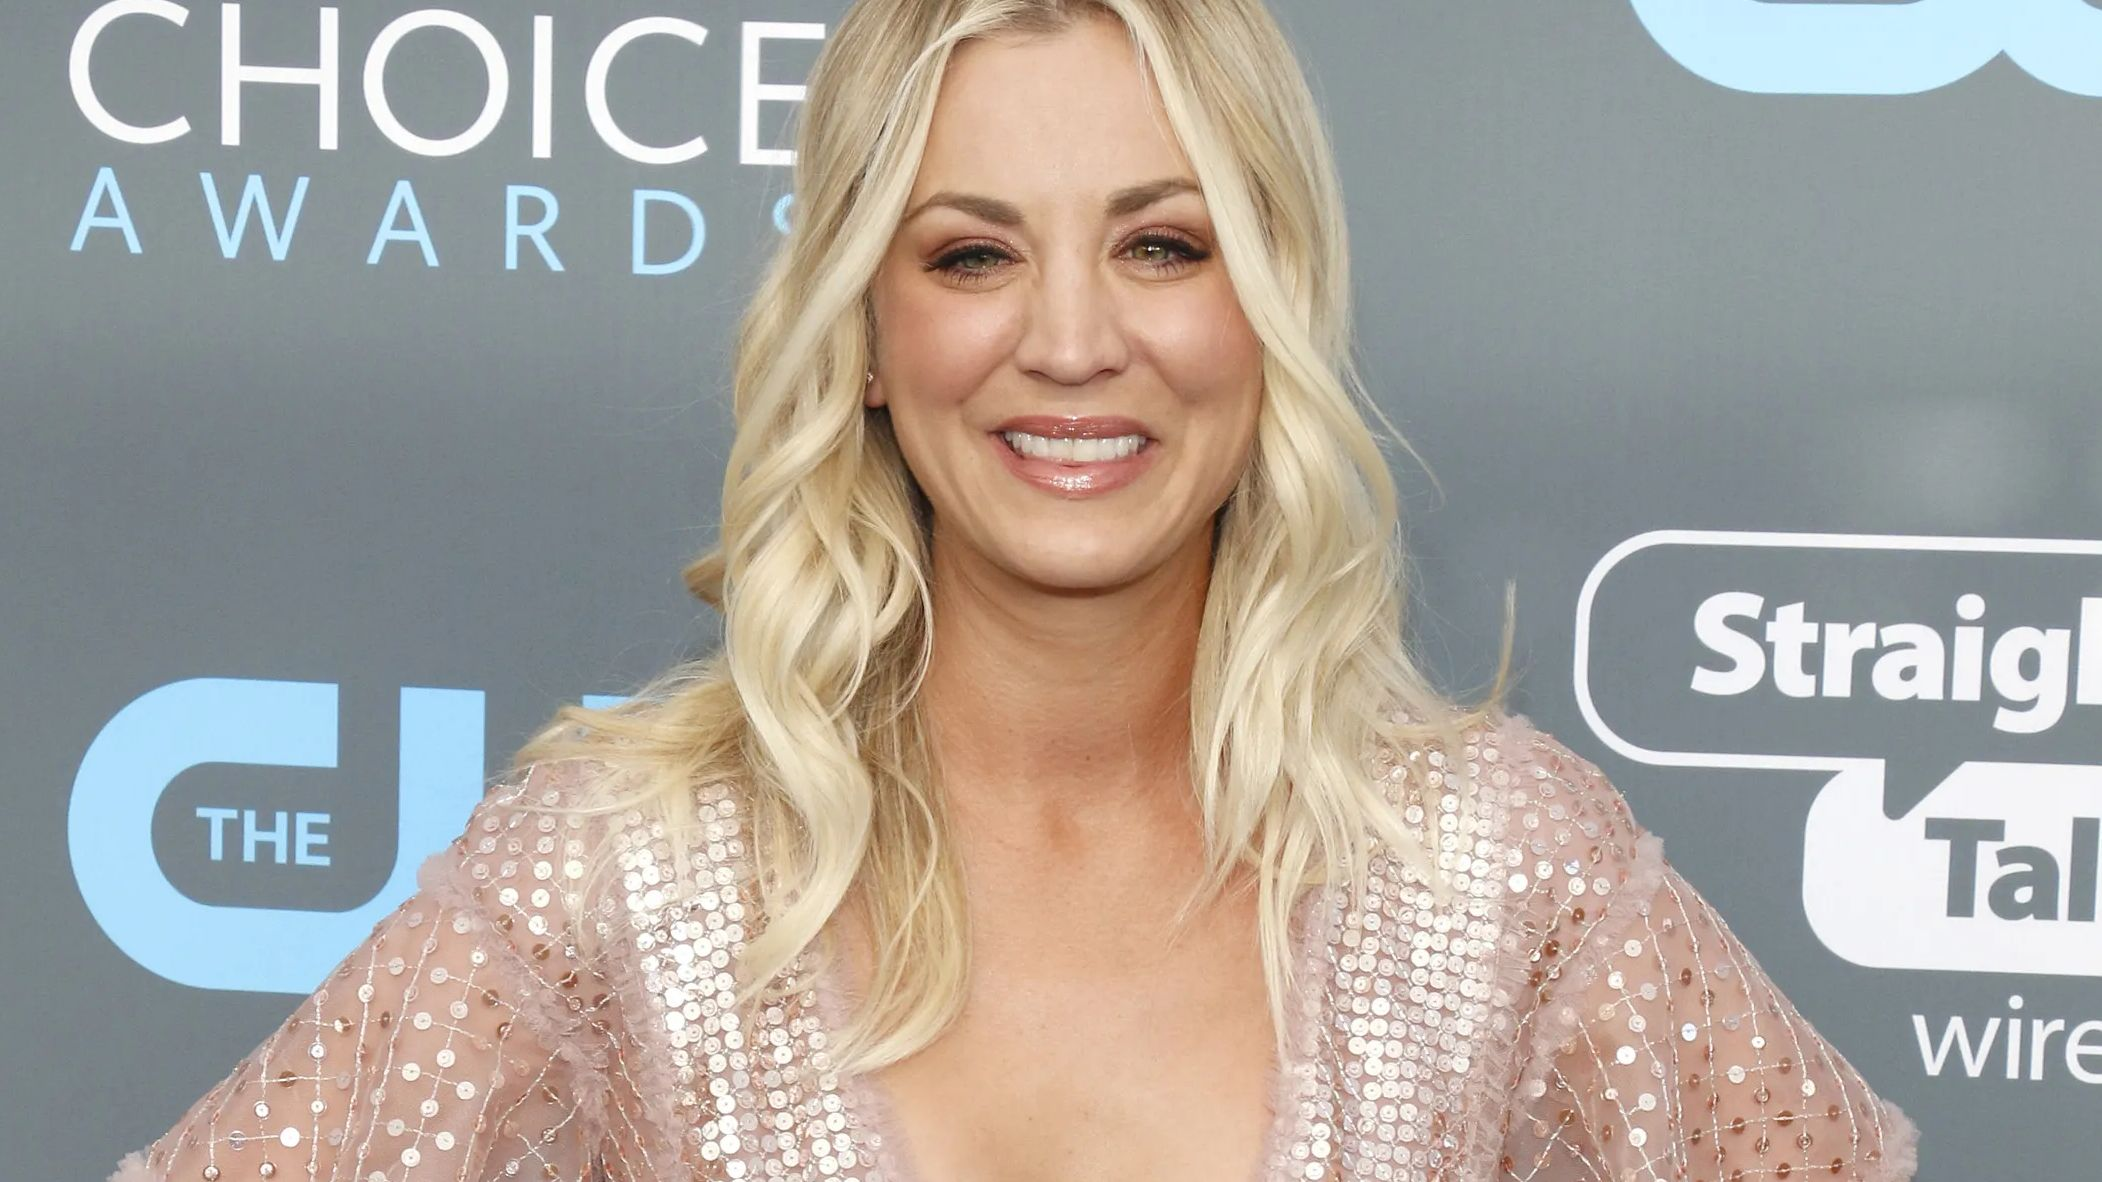 Kaley Cuoco smiles at an event